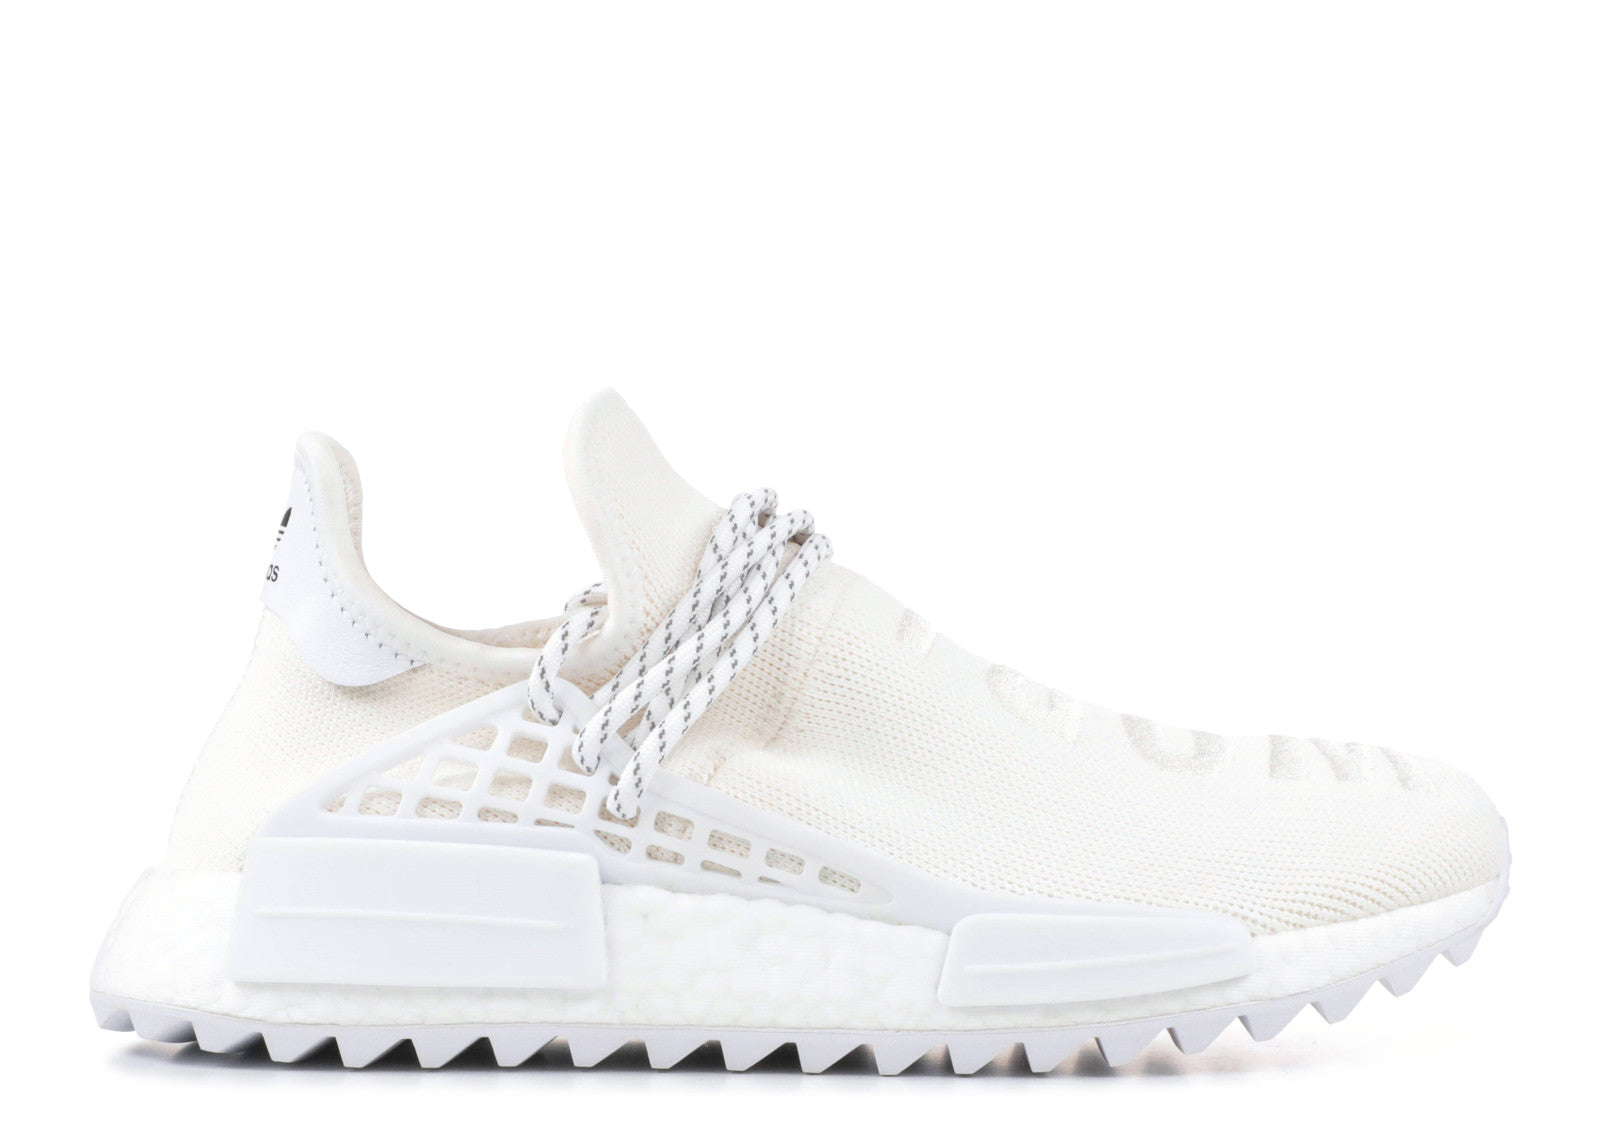 separation shoes 31e00 ca6f3 ADIDAS HUMAN RACE NMD